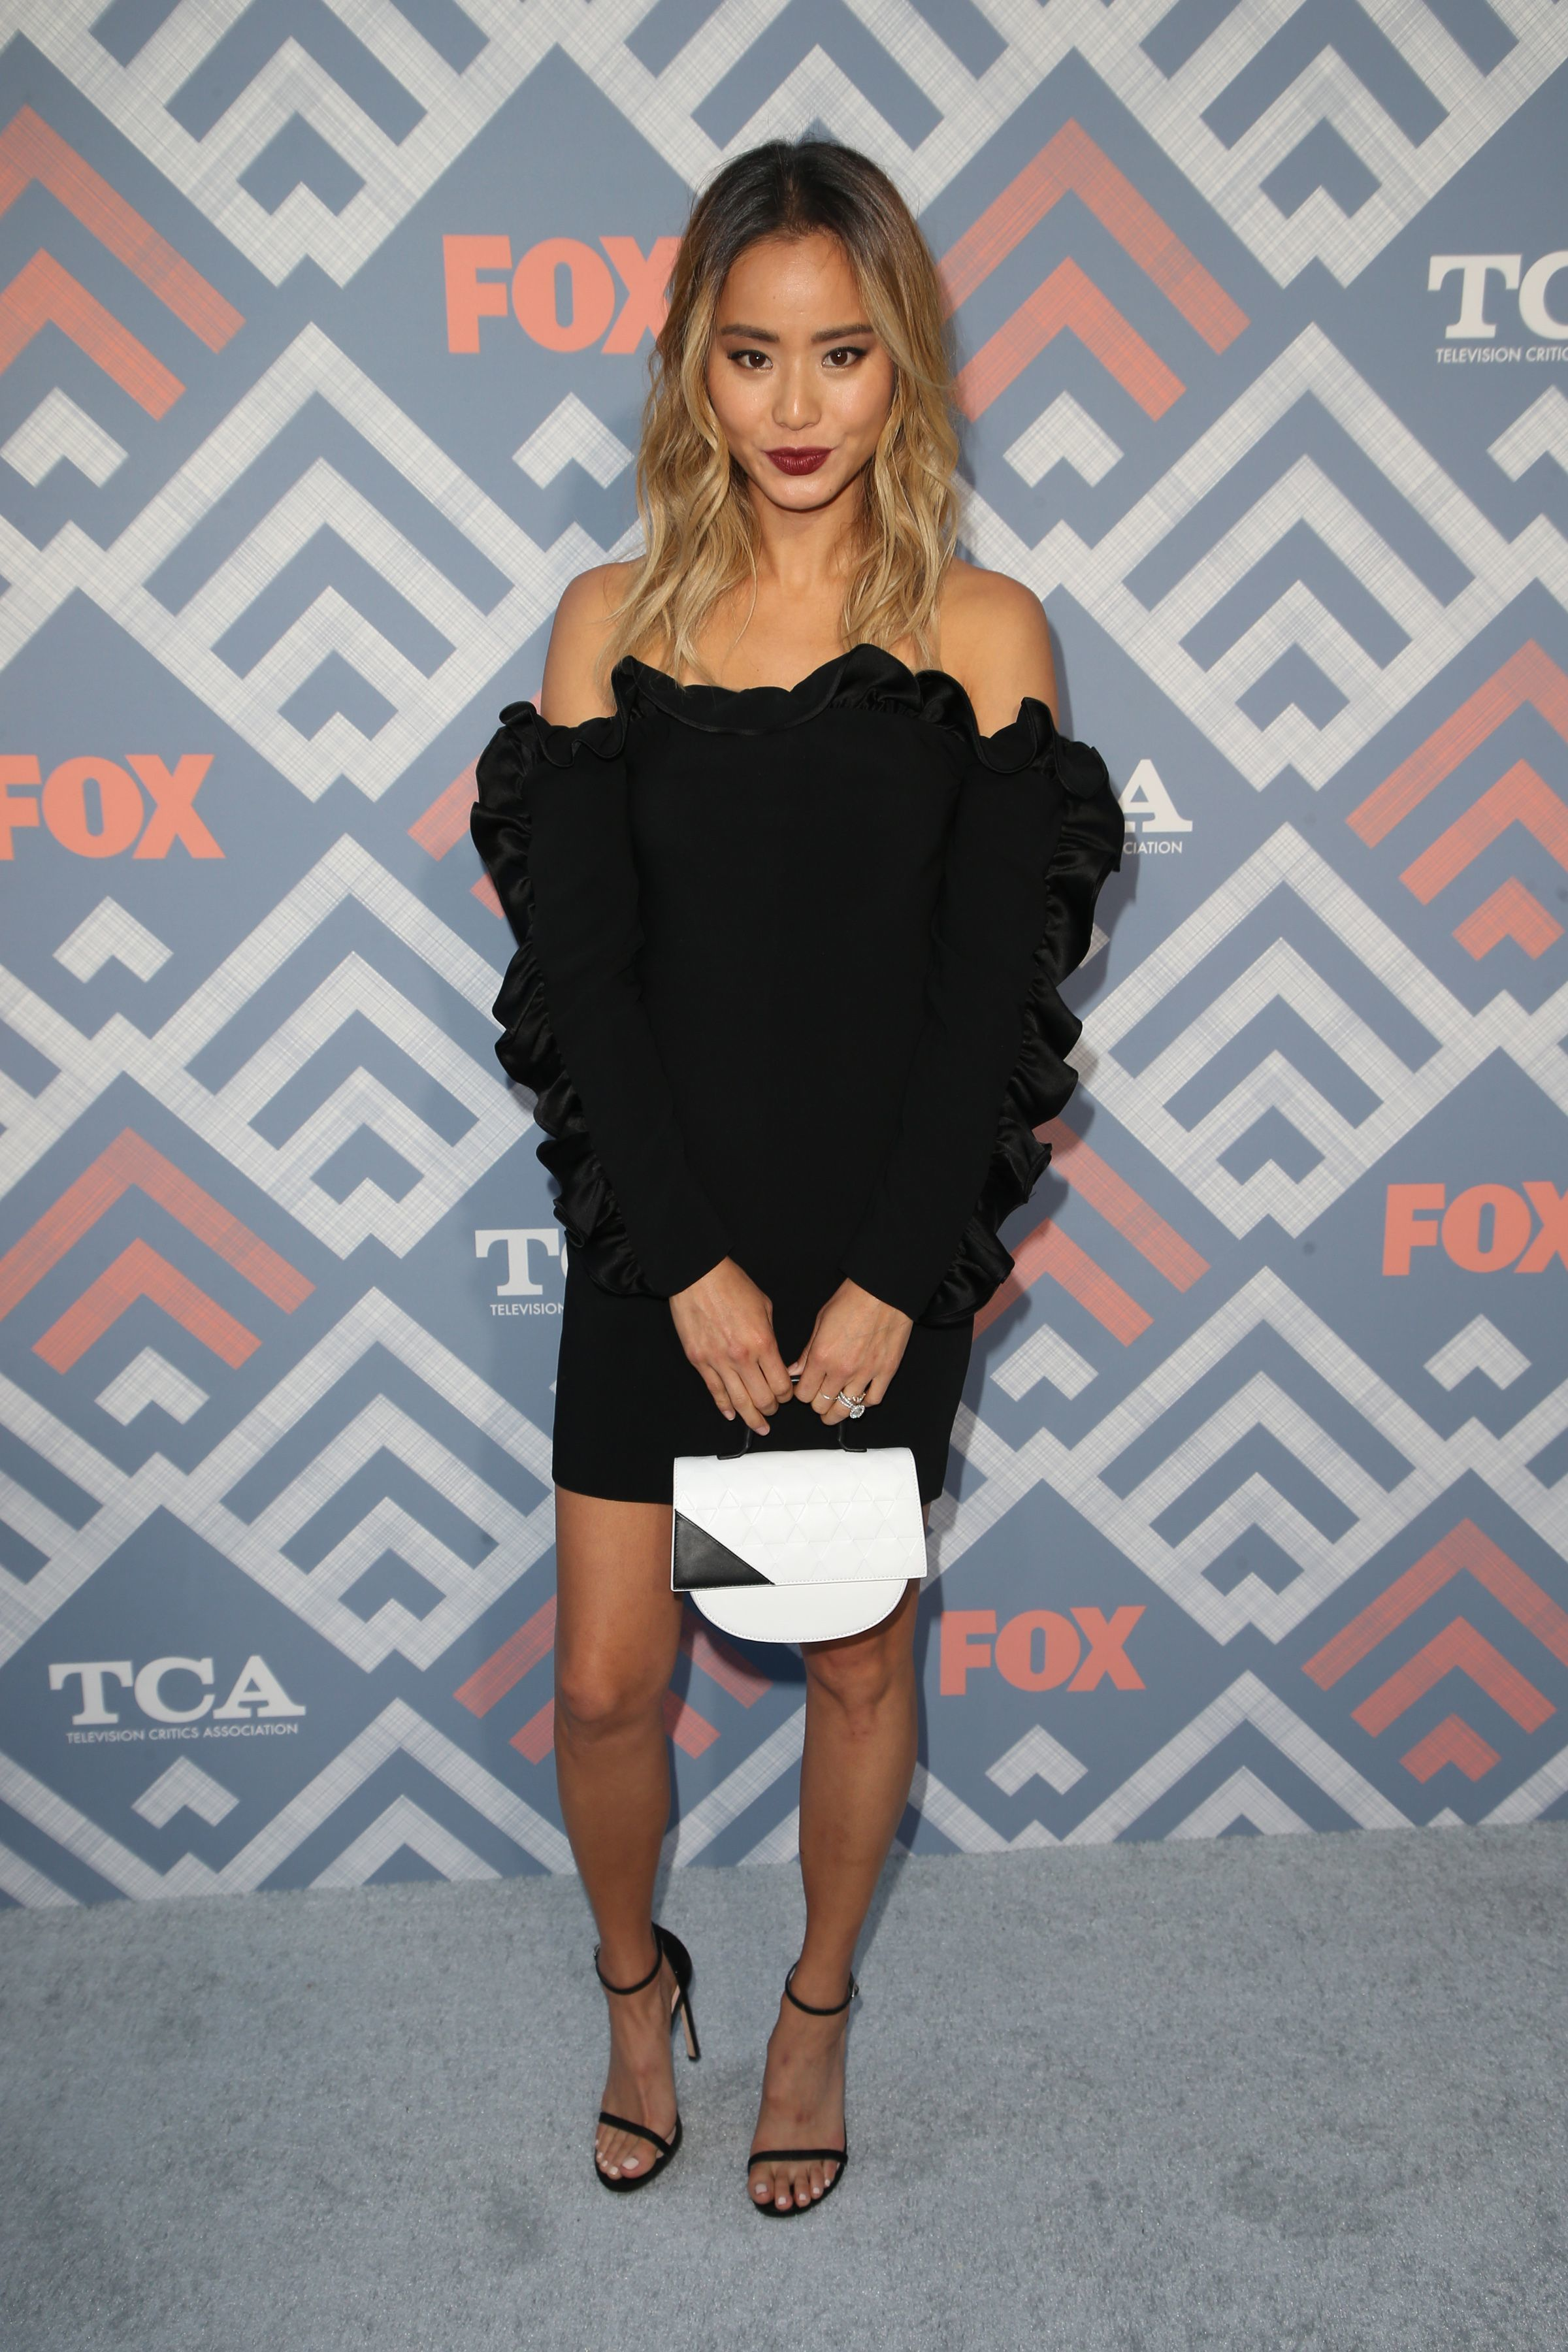 Jamie Chung attends the Fox TCA Summer Press Tour in Los Angeles on Aug. 8, 2017.